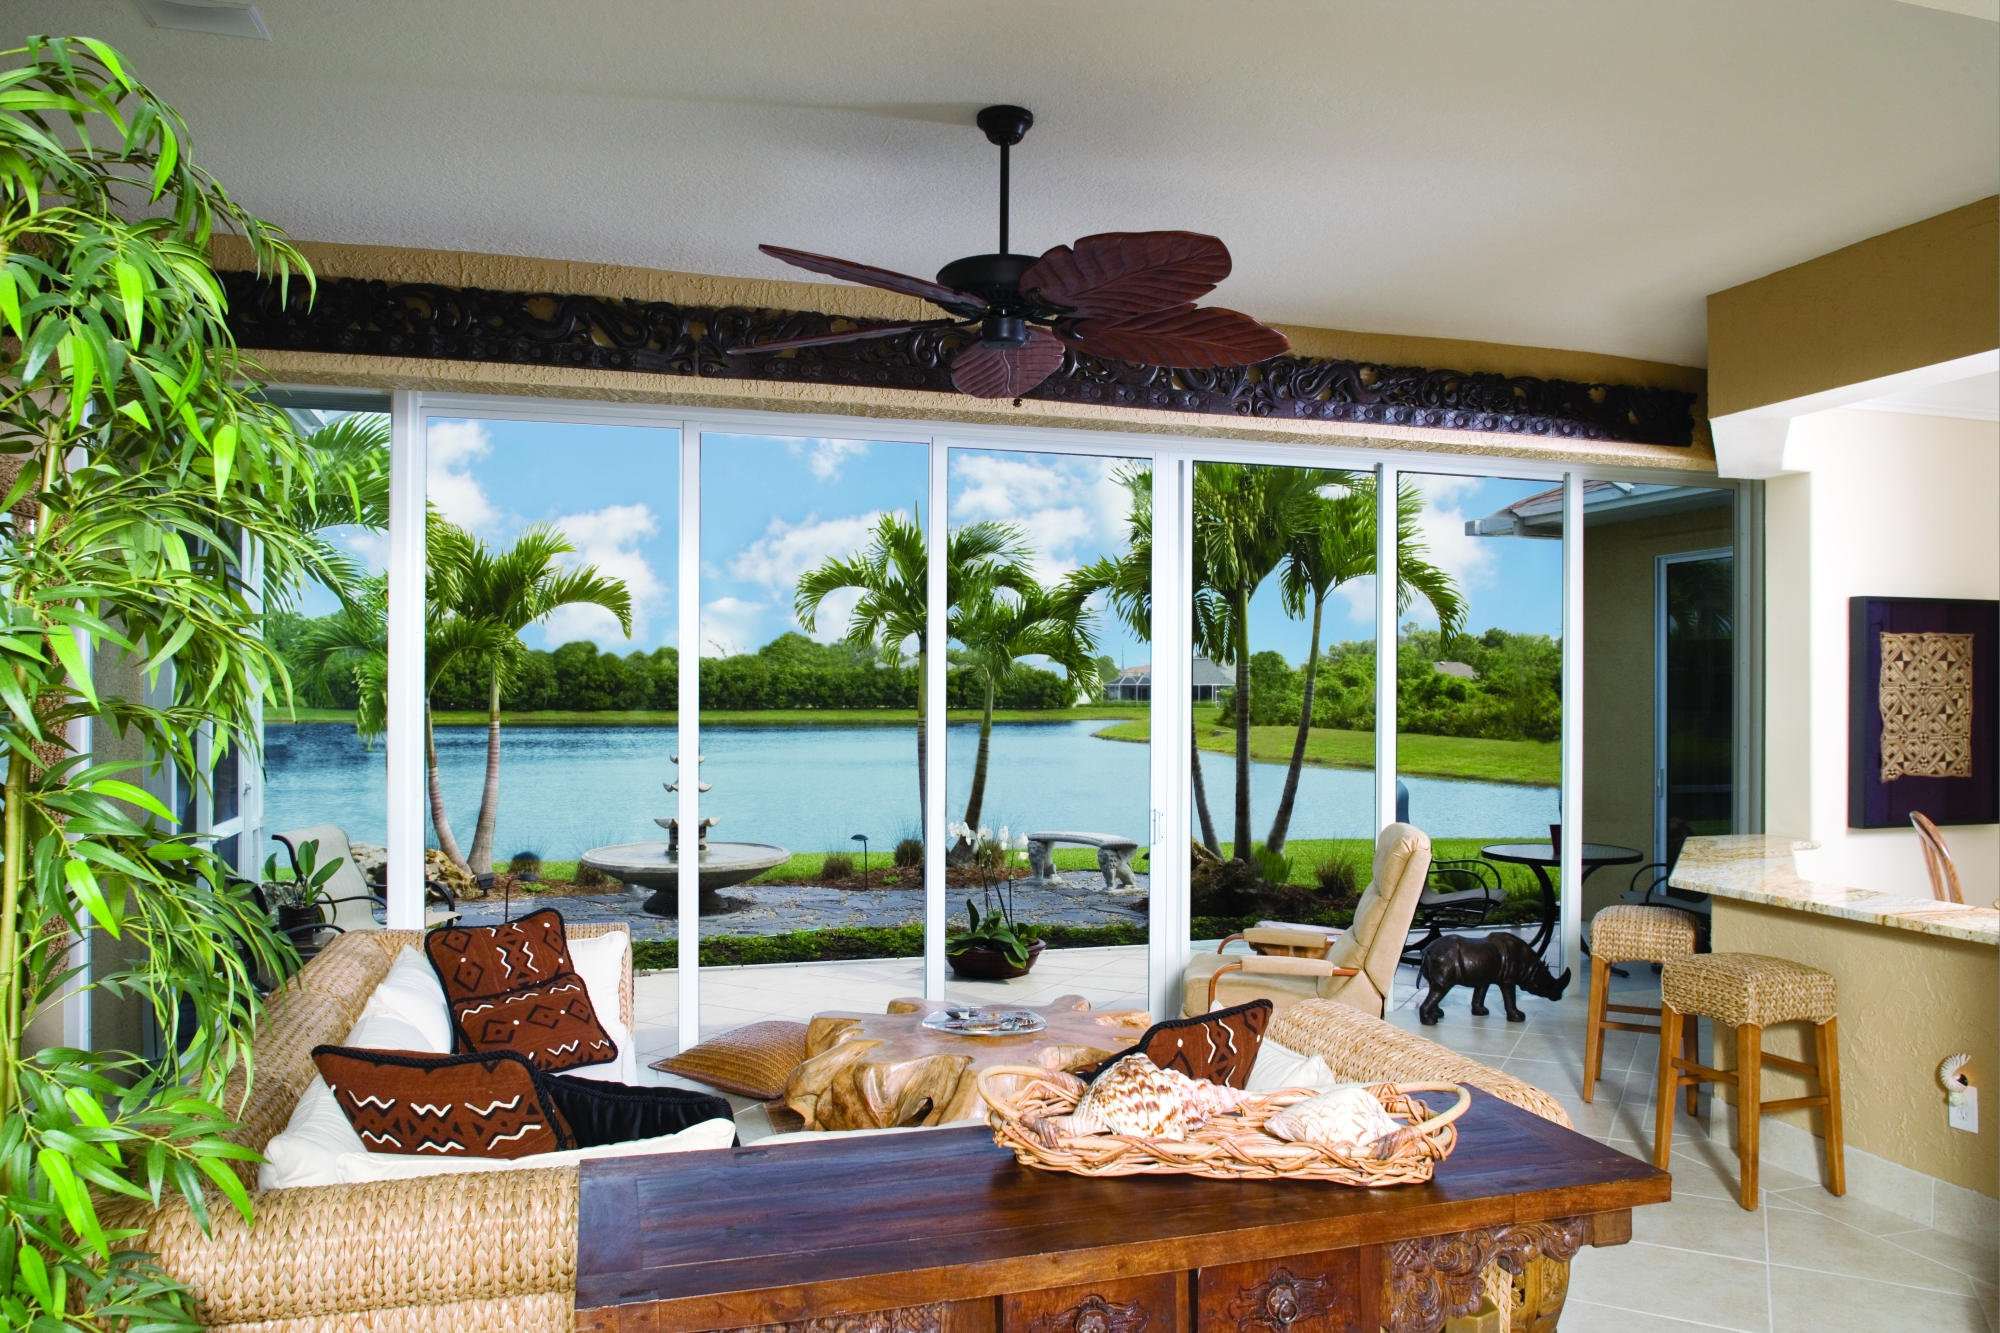 Glass sliding door vortex windows impact hurricane protection glass especially designed for florida wind loads offered in bypass center meet pocket doors all doors custom built to your planetlyrics Images